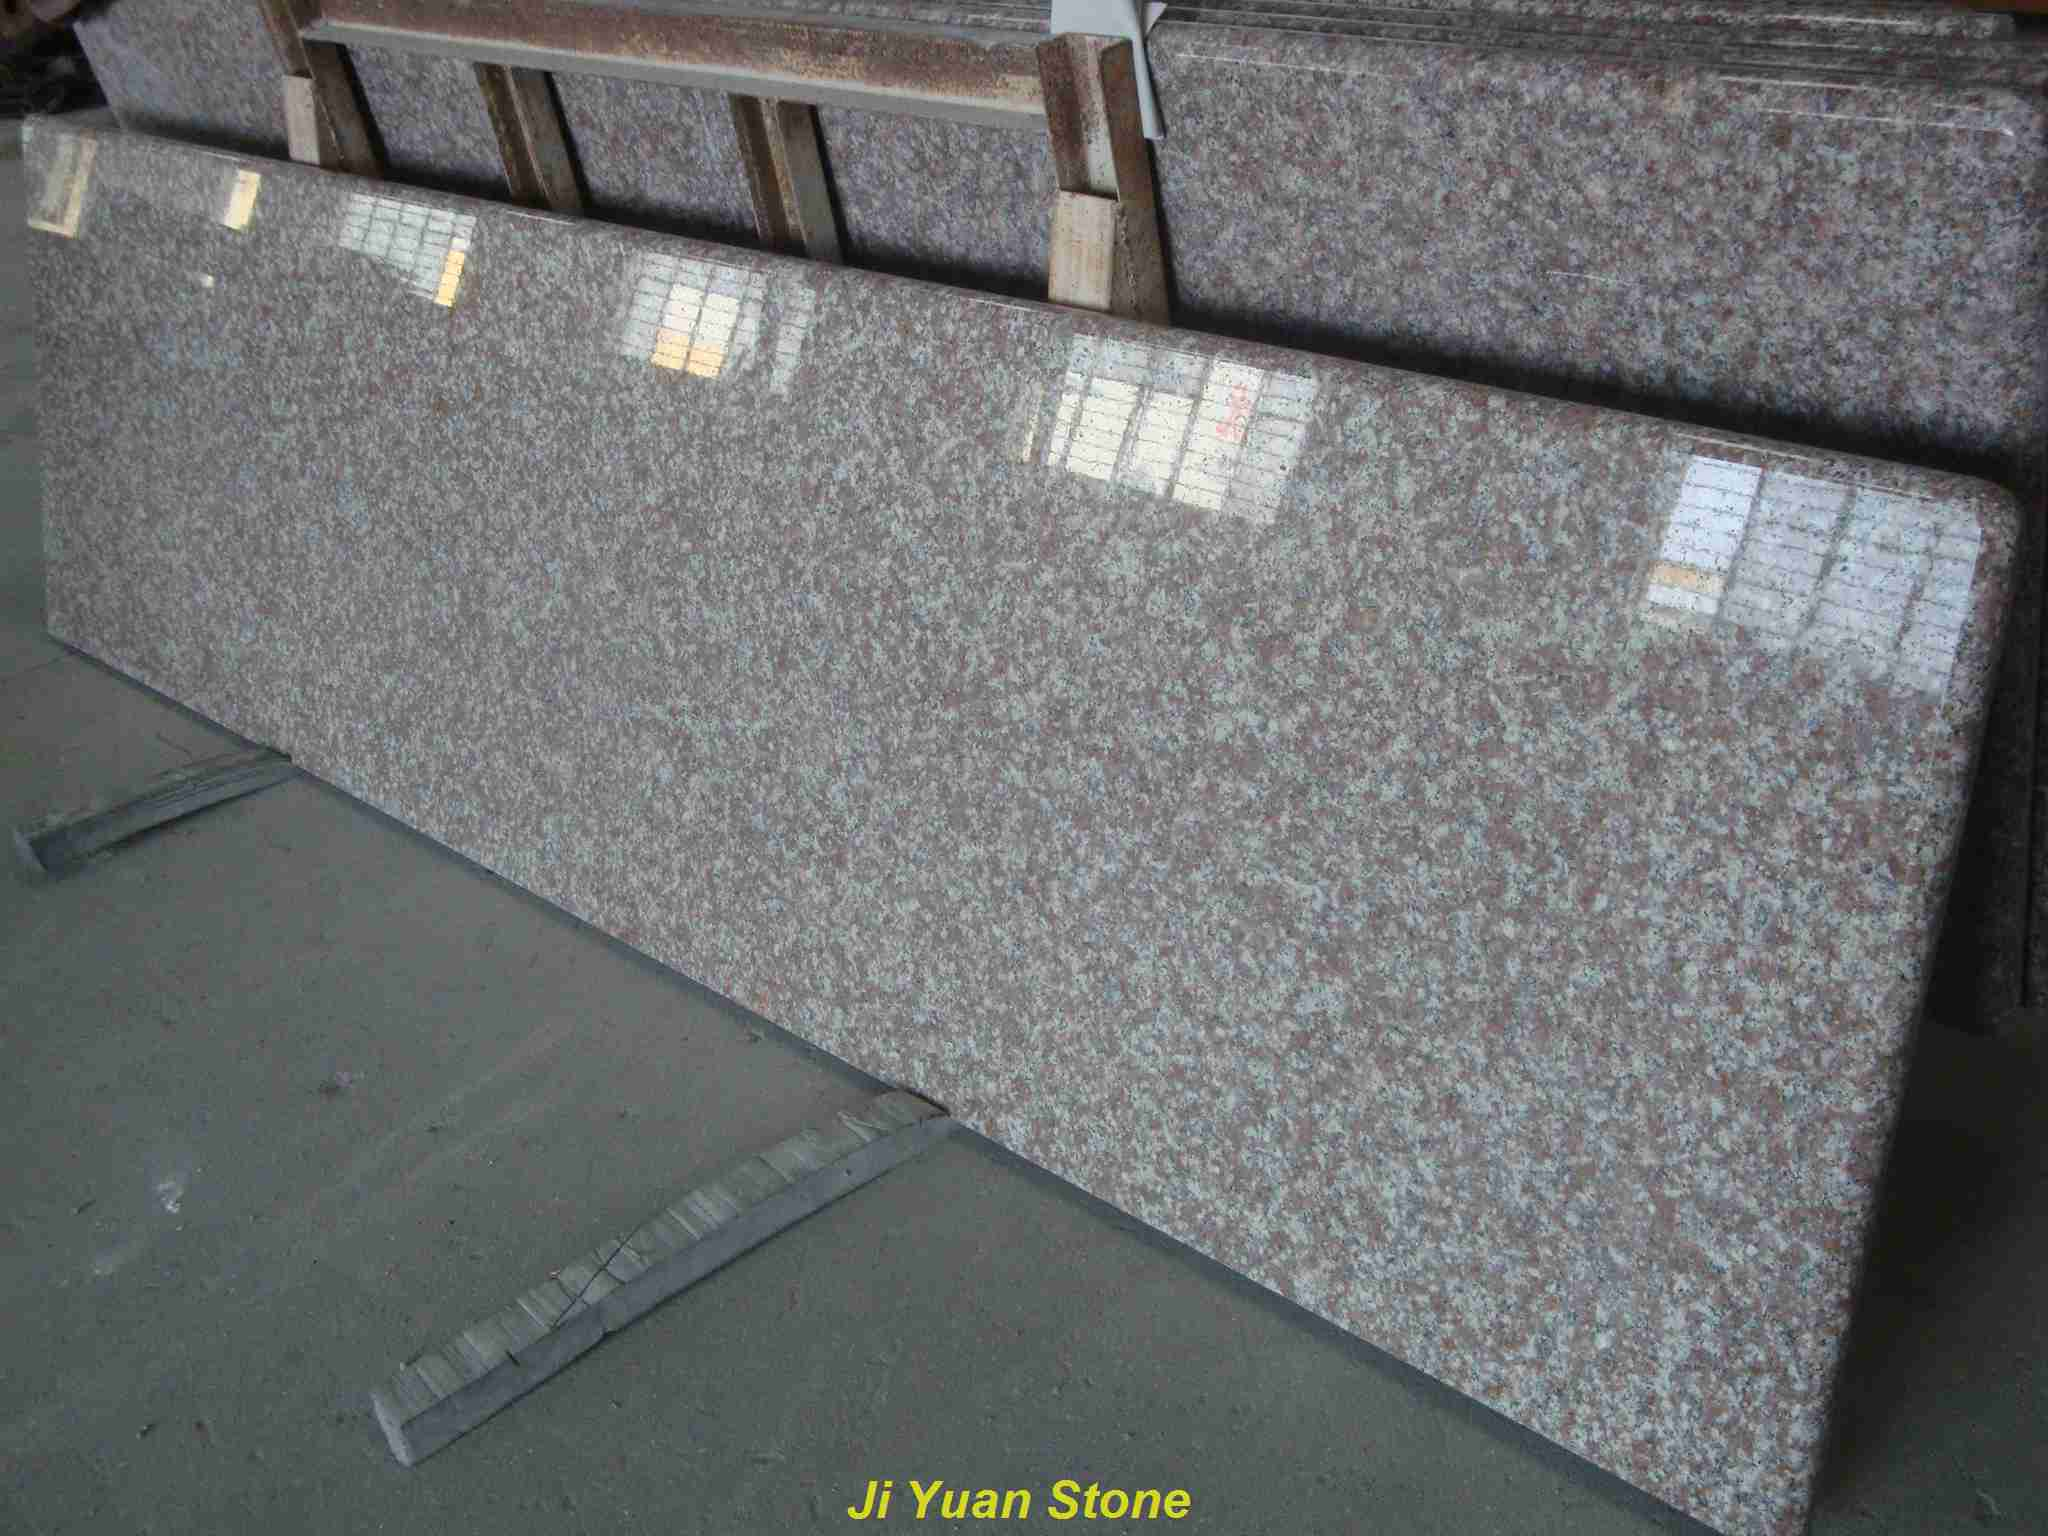 Peach purse,imperial granite,imperial gold granite,imperial granite and marble,imperial pink granite,g687 granite,peach red granite,imperial pink,peach granite countertops